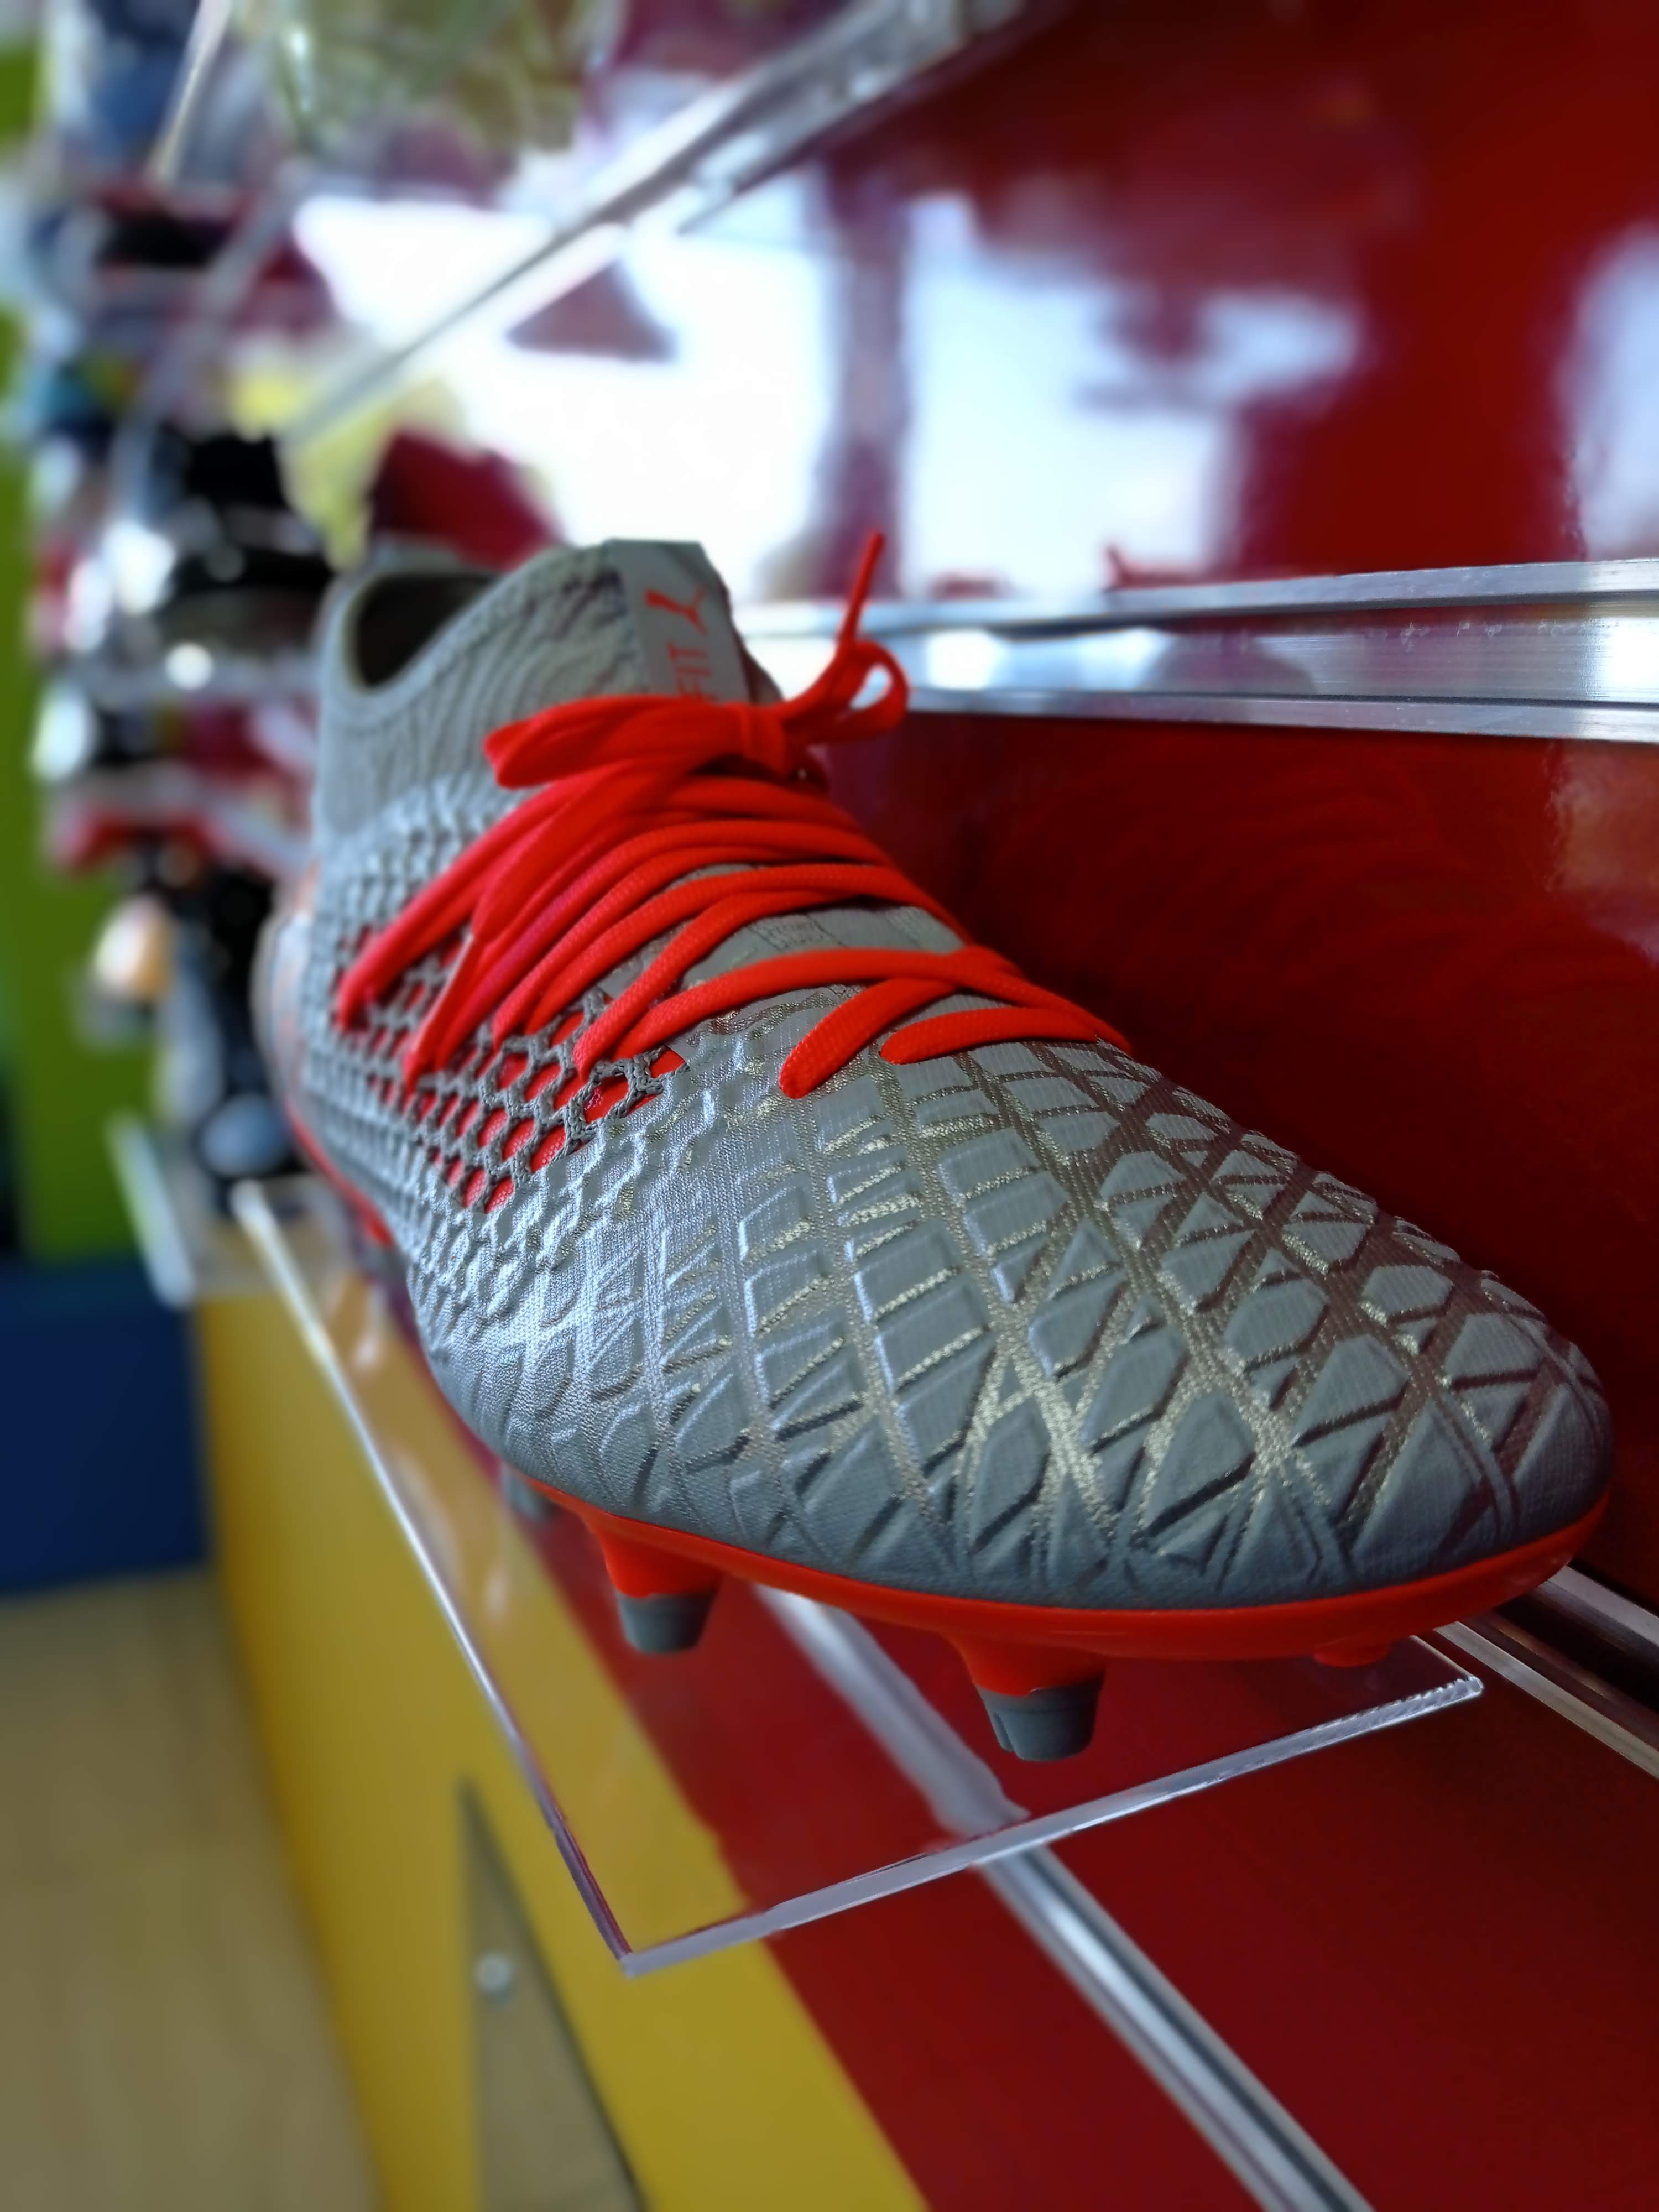 Picture of Puma future football shoes on display